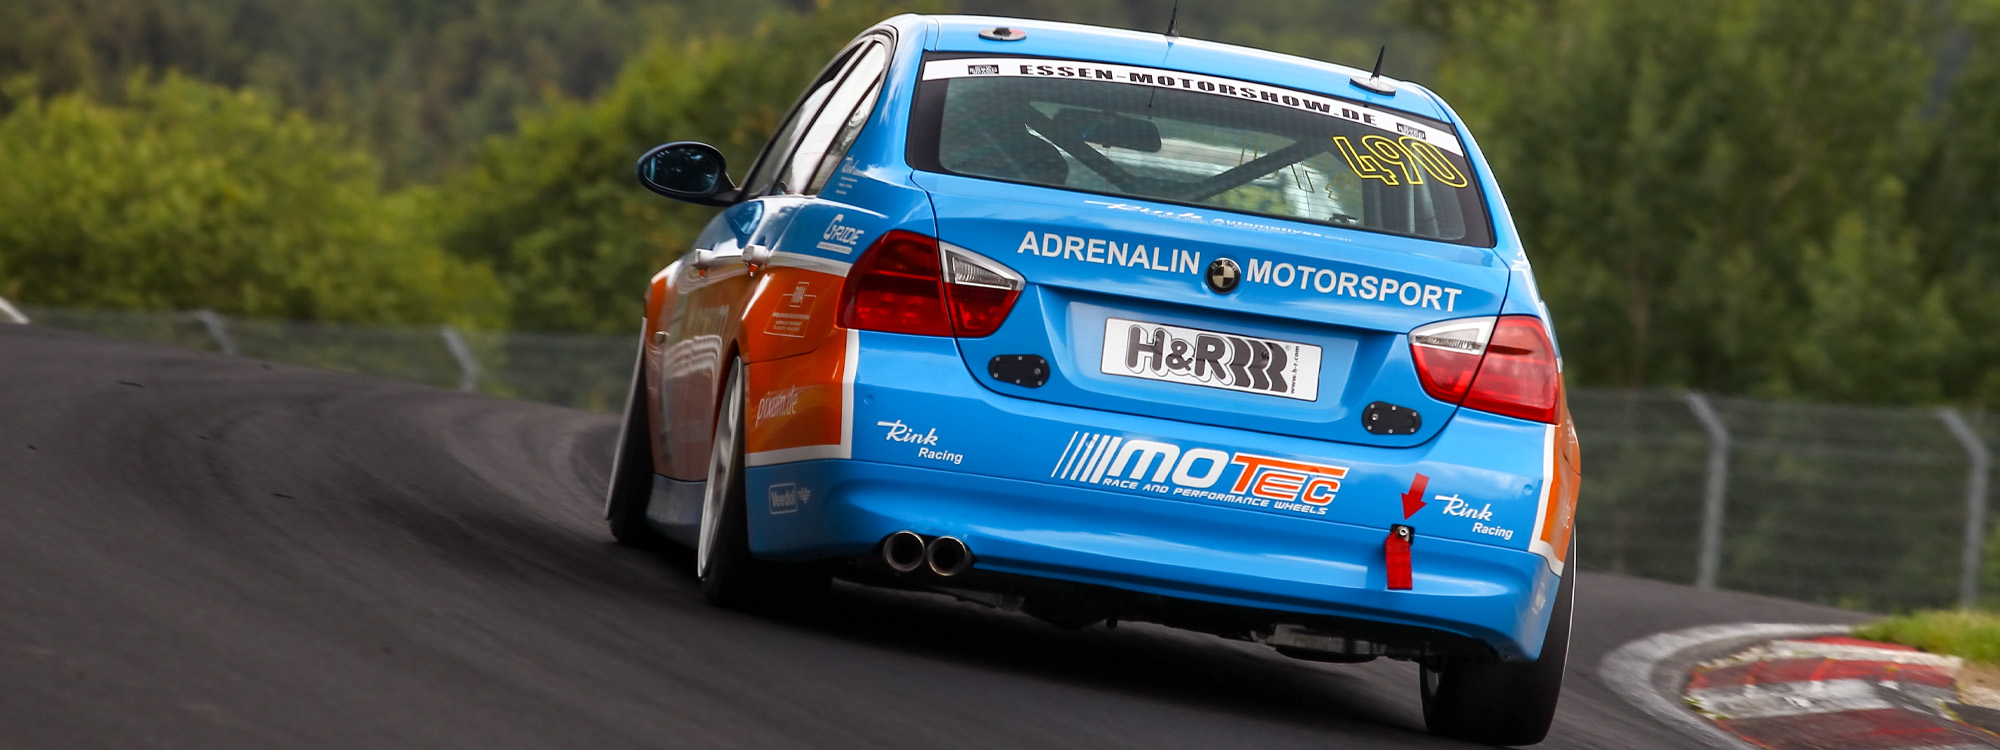 adrenalin motorsport header 7